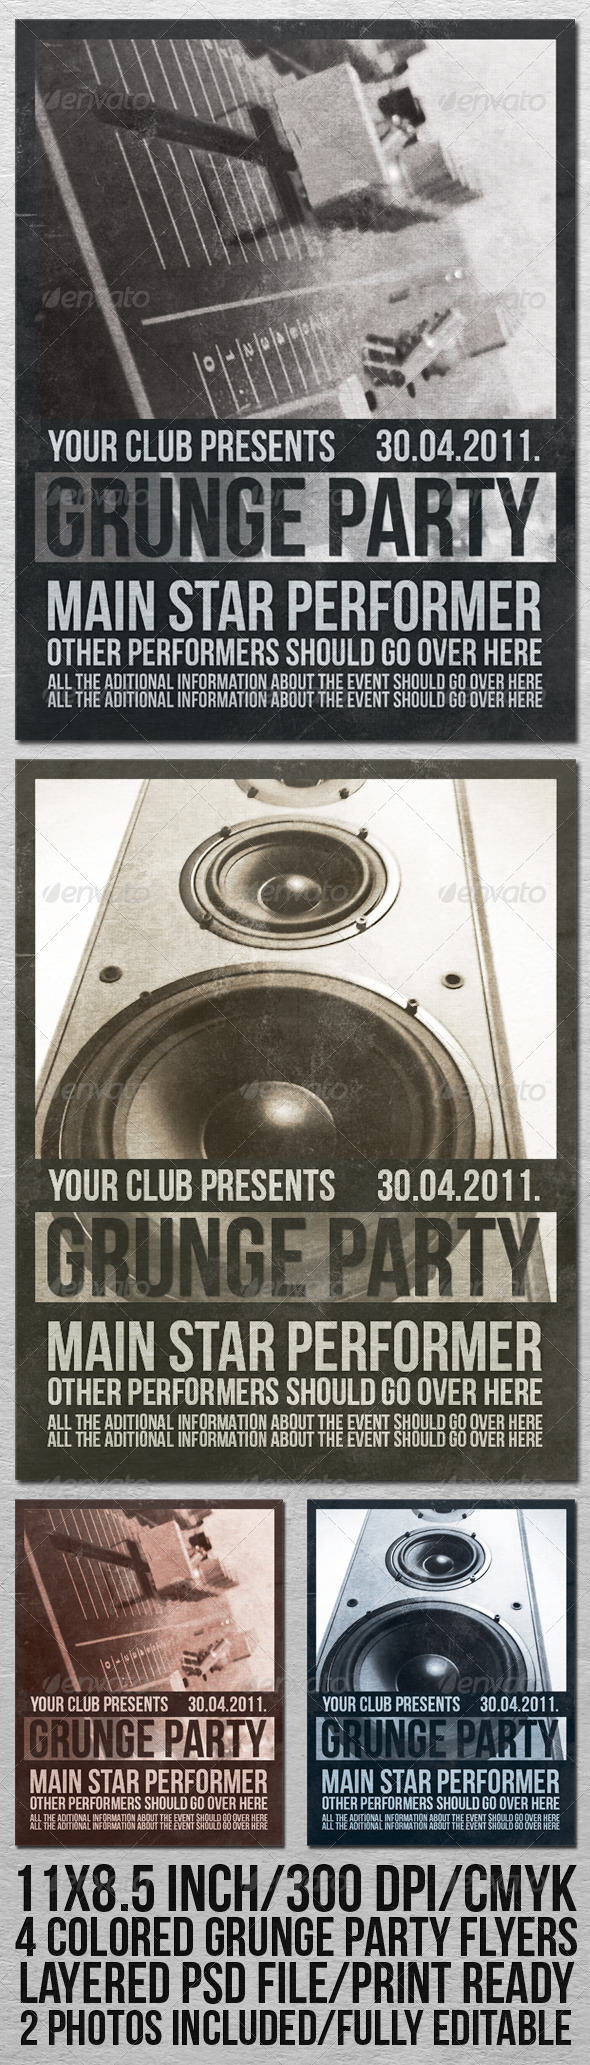 GRUNGE PARTY FLYER - Clubs & Parties Events